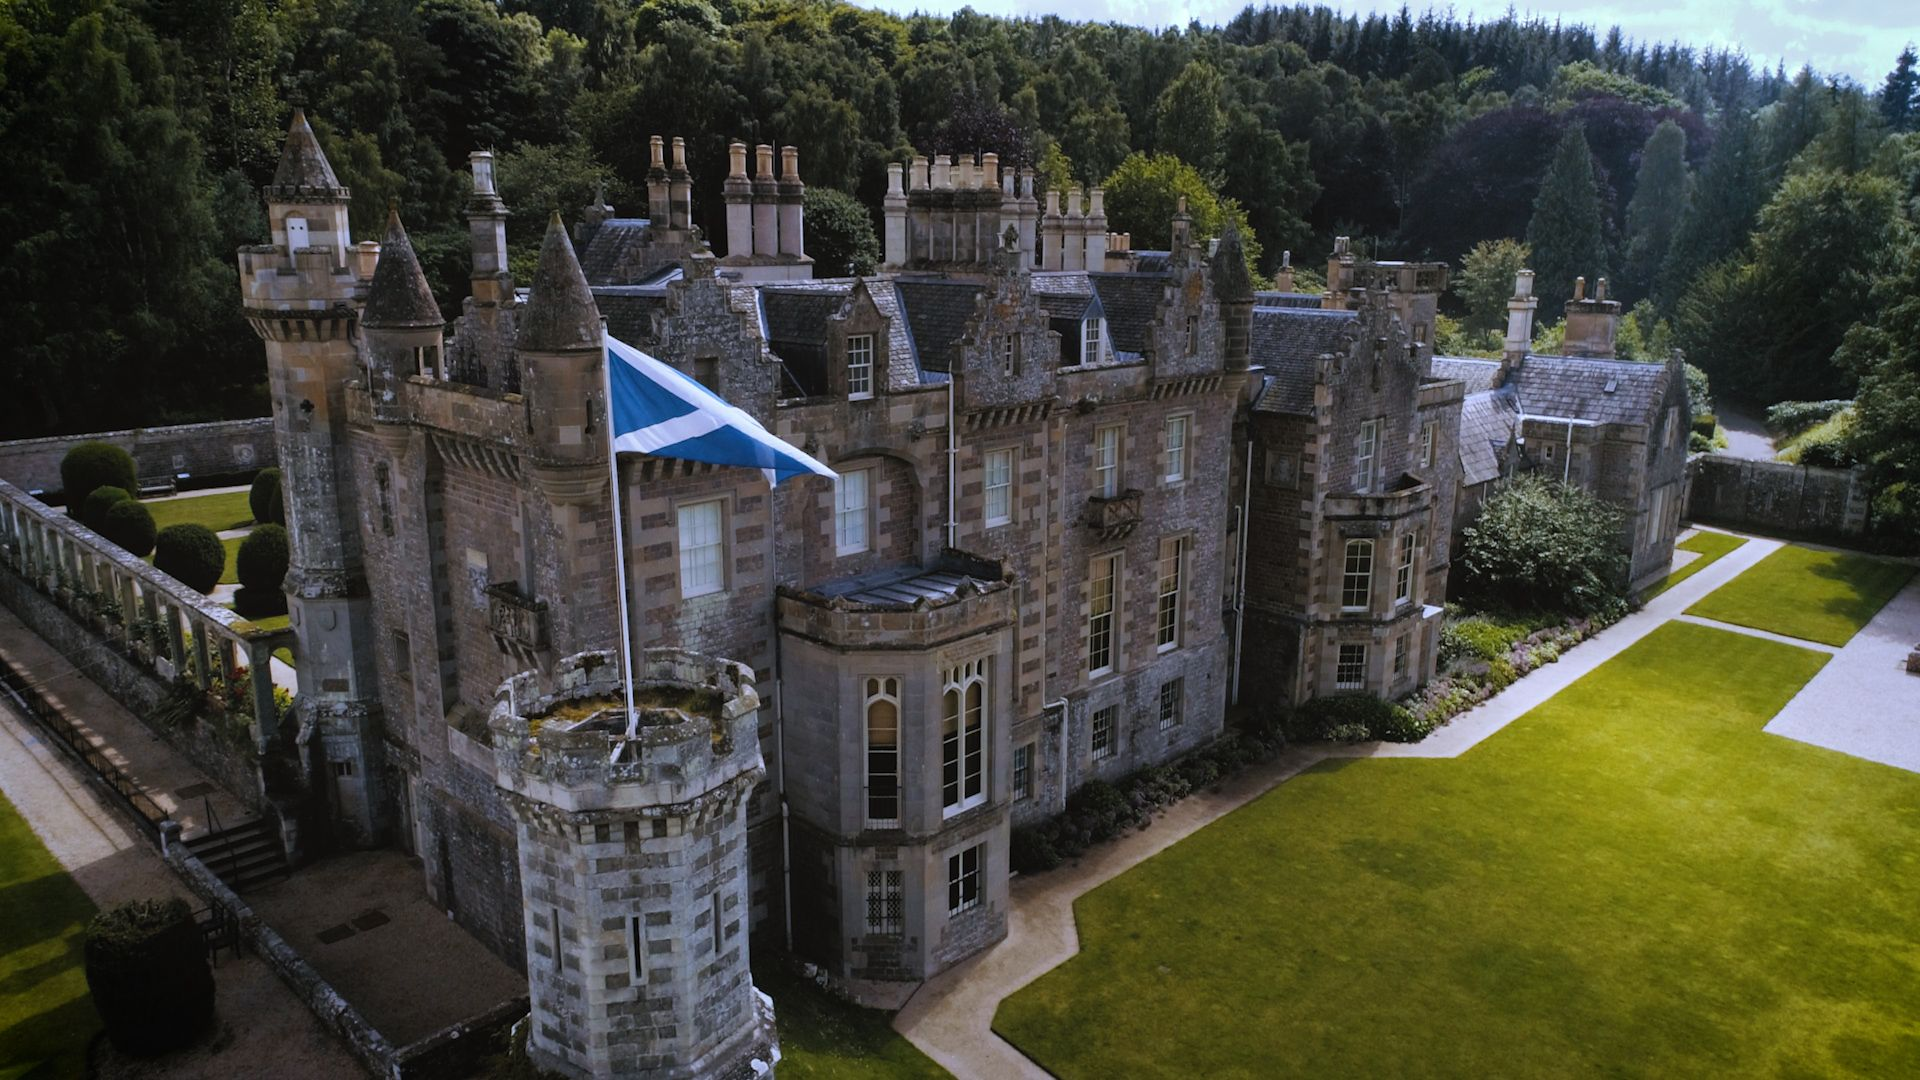 Abbotsford House, home of Sir Walter Scott